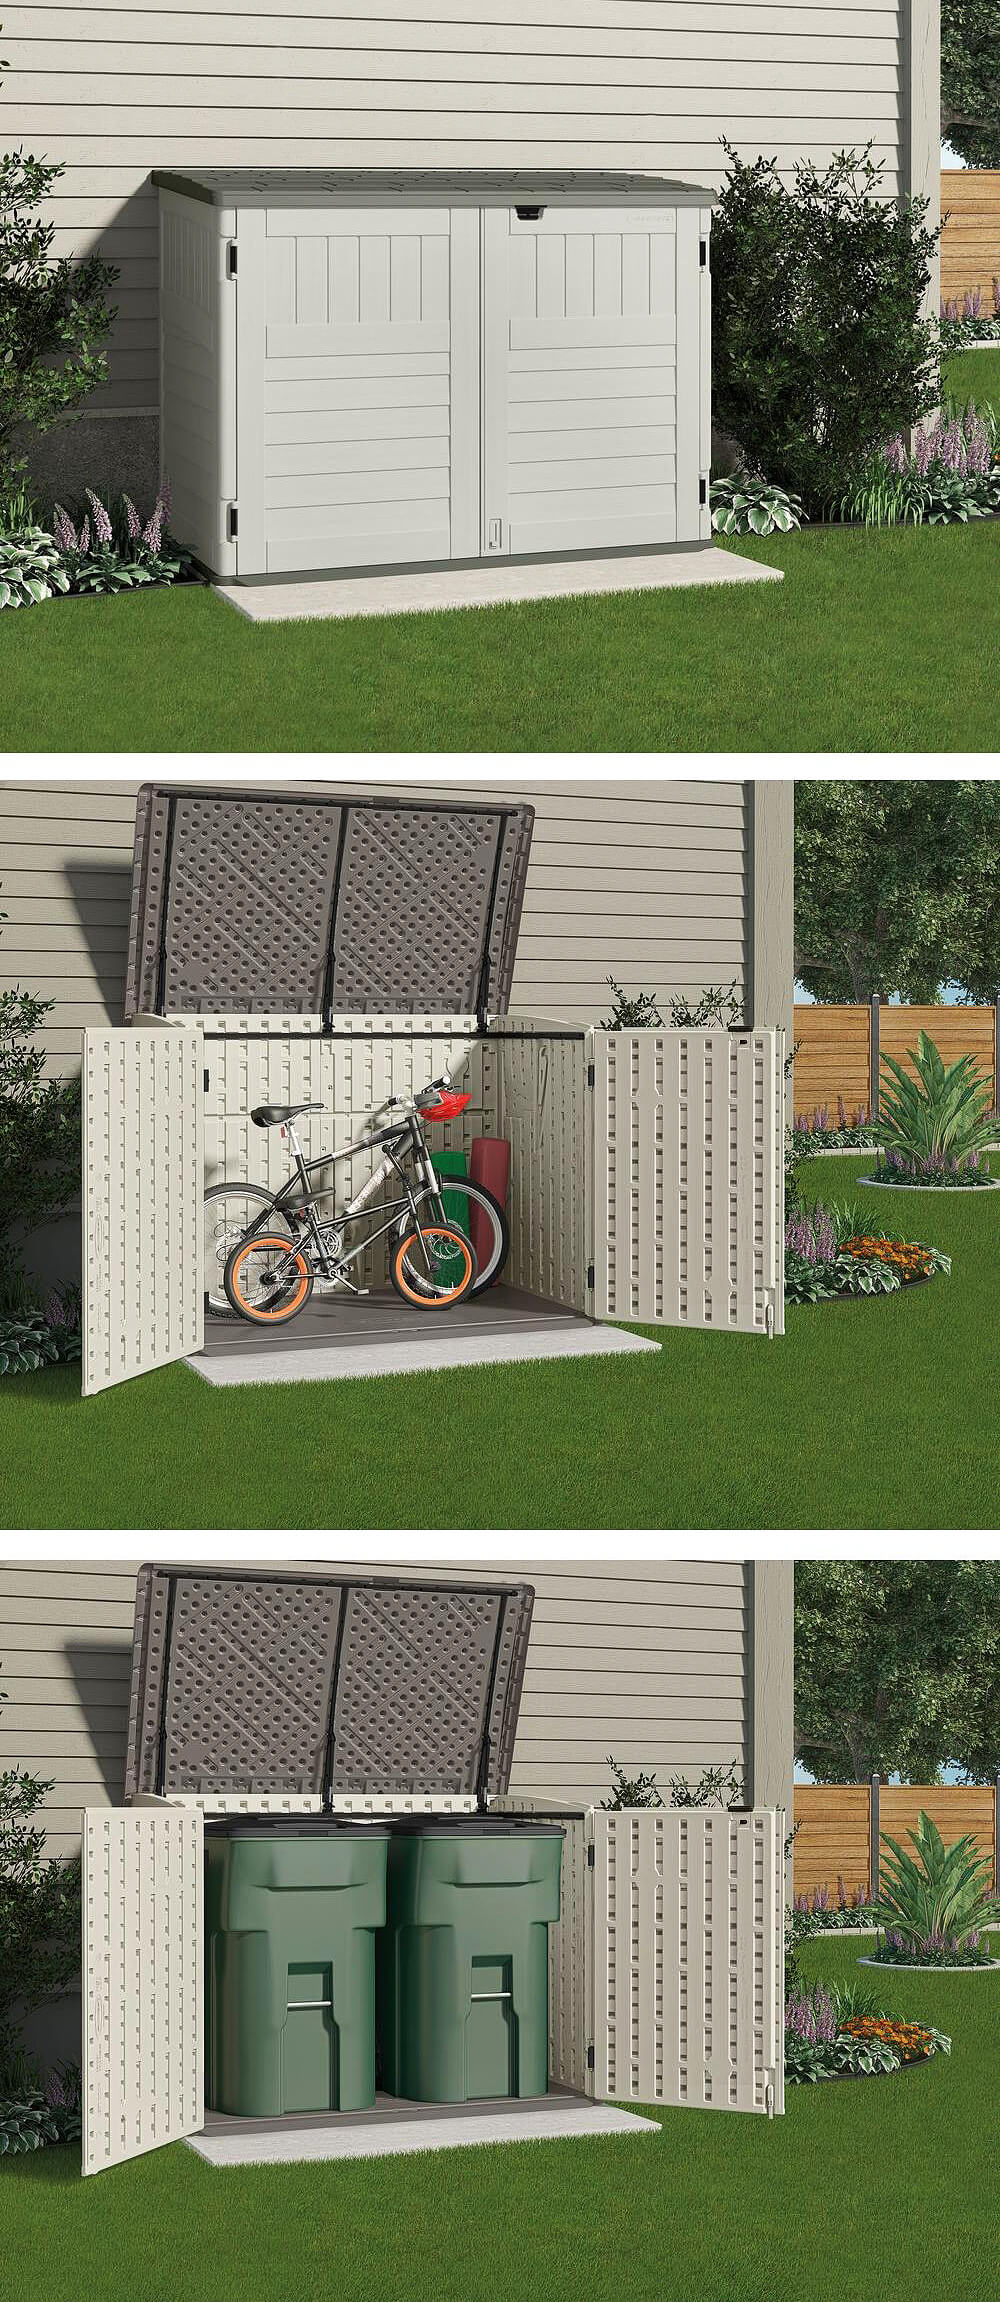 Covered, Two Door Bike And Trash Friendly Storage Unit